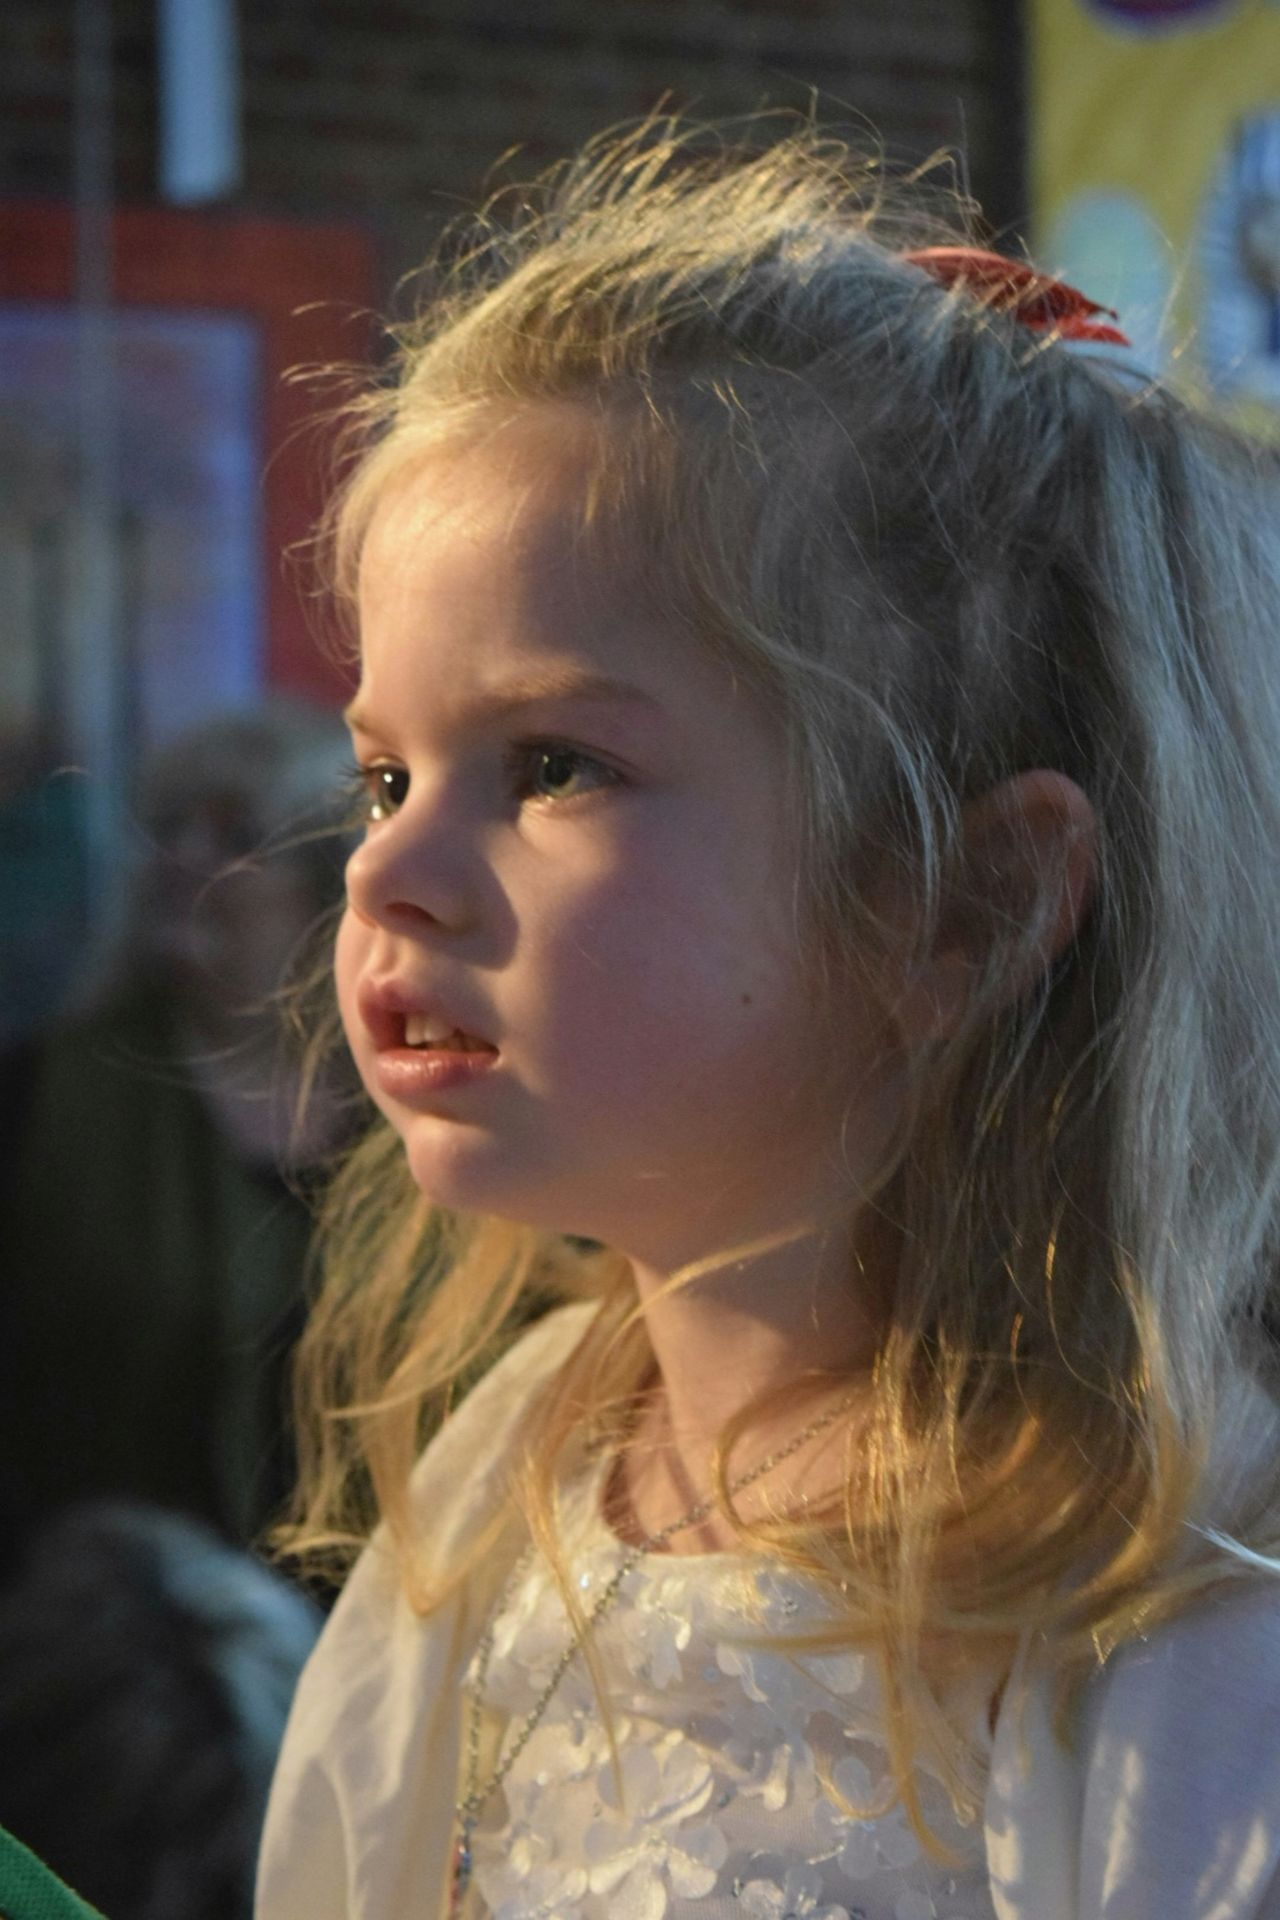 One Girl Only Headshot Child Blond Hair Side View One Person Close-up Girls Childhood People Children Only Real People Indoors  Human Body Part Day Serene Long Hair White Angel Christmas Nativity School Play Niece  Calm Cute